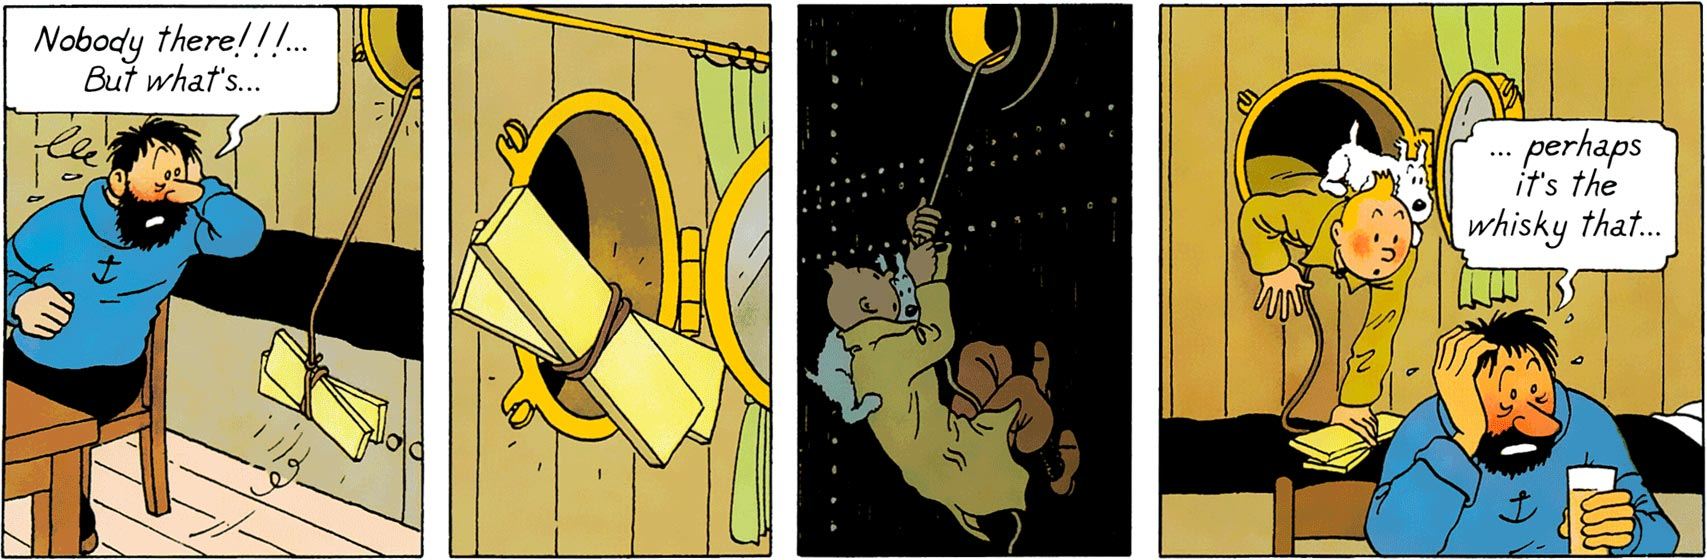 Tintin meets Haddock in the The Crab with the Golden Claws